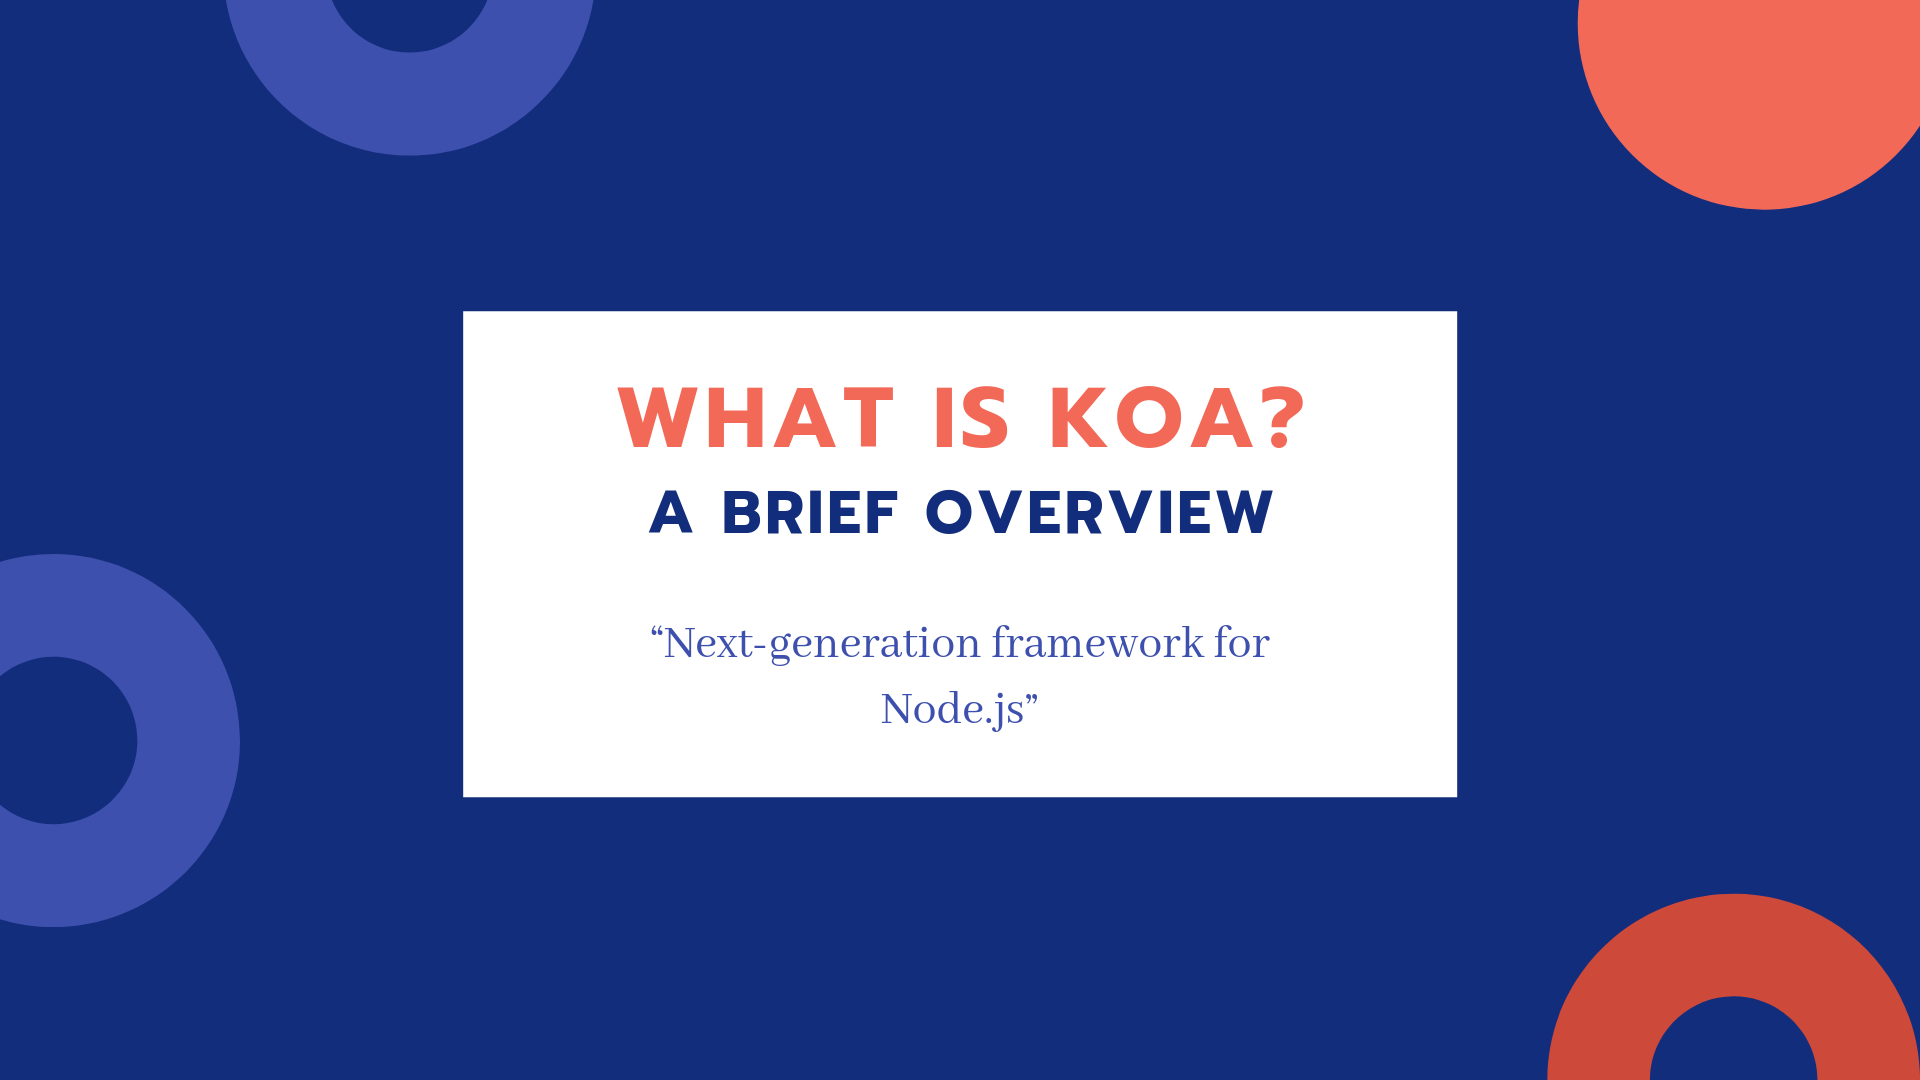 What is Koa? A Brief Overview